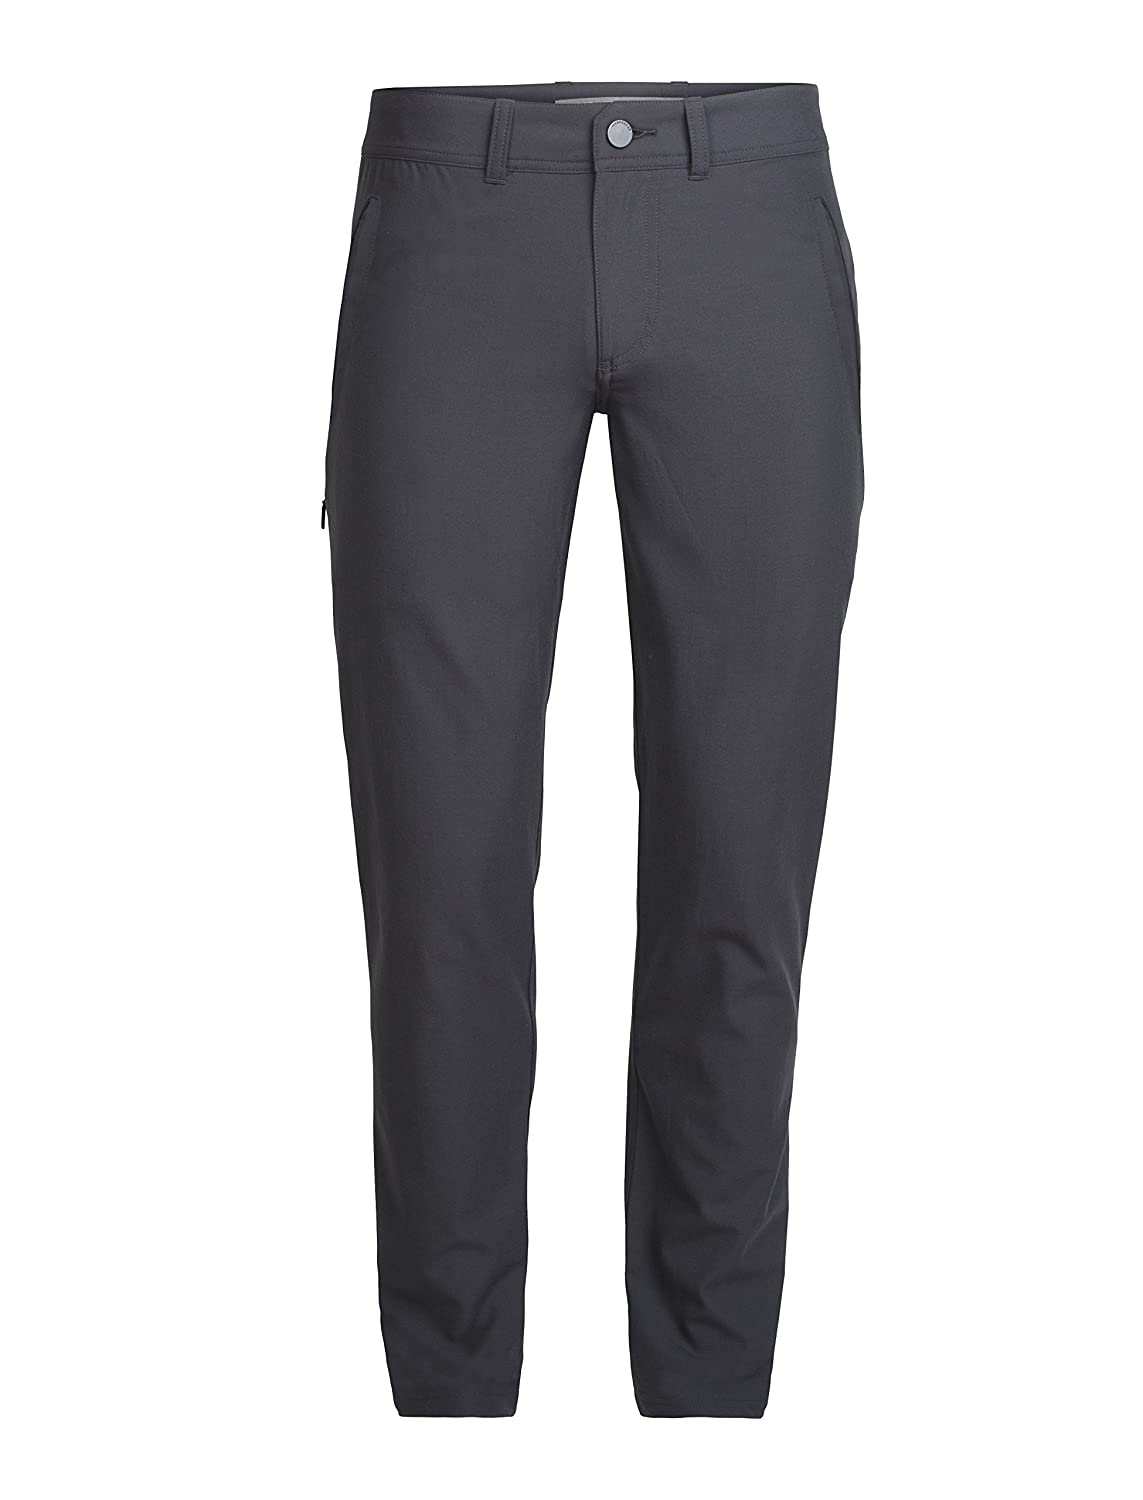 Icebreaker Connection Pants Men - Merino Outdoorhose